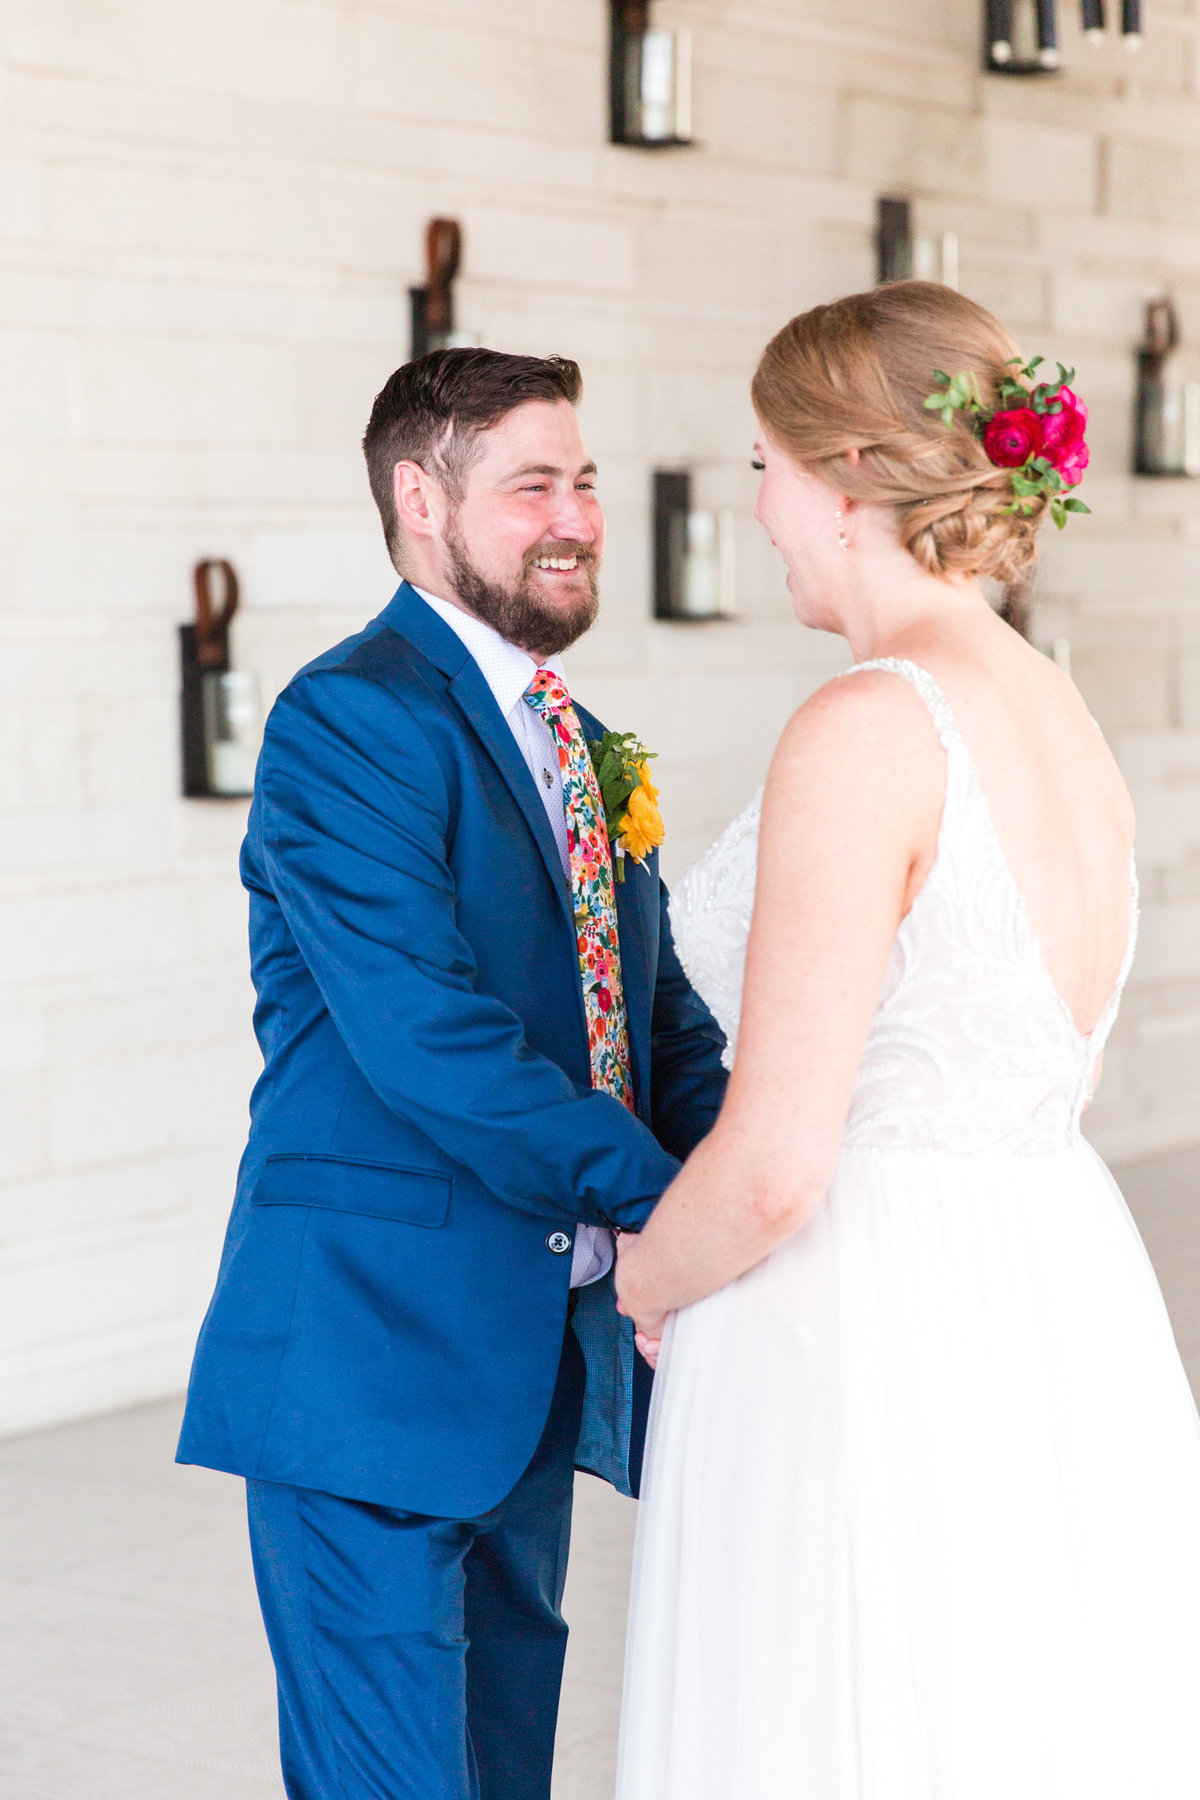 Dallas Wedding Photographers | Sami Kathryn Photography | Portfolio: Jake & Julie